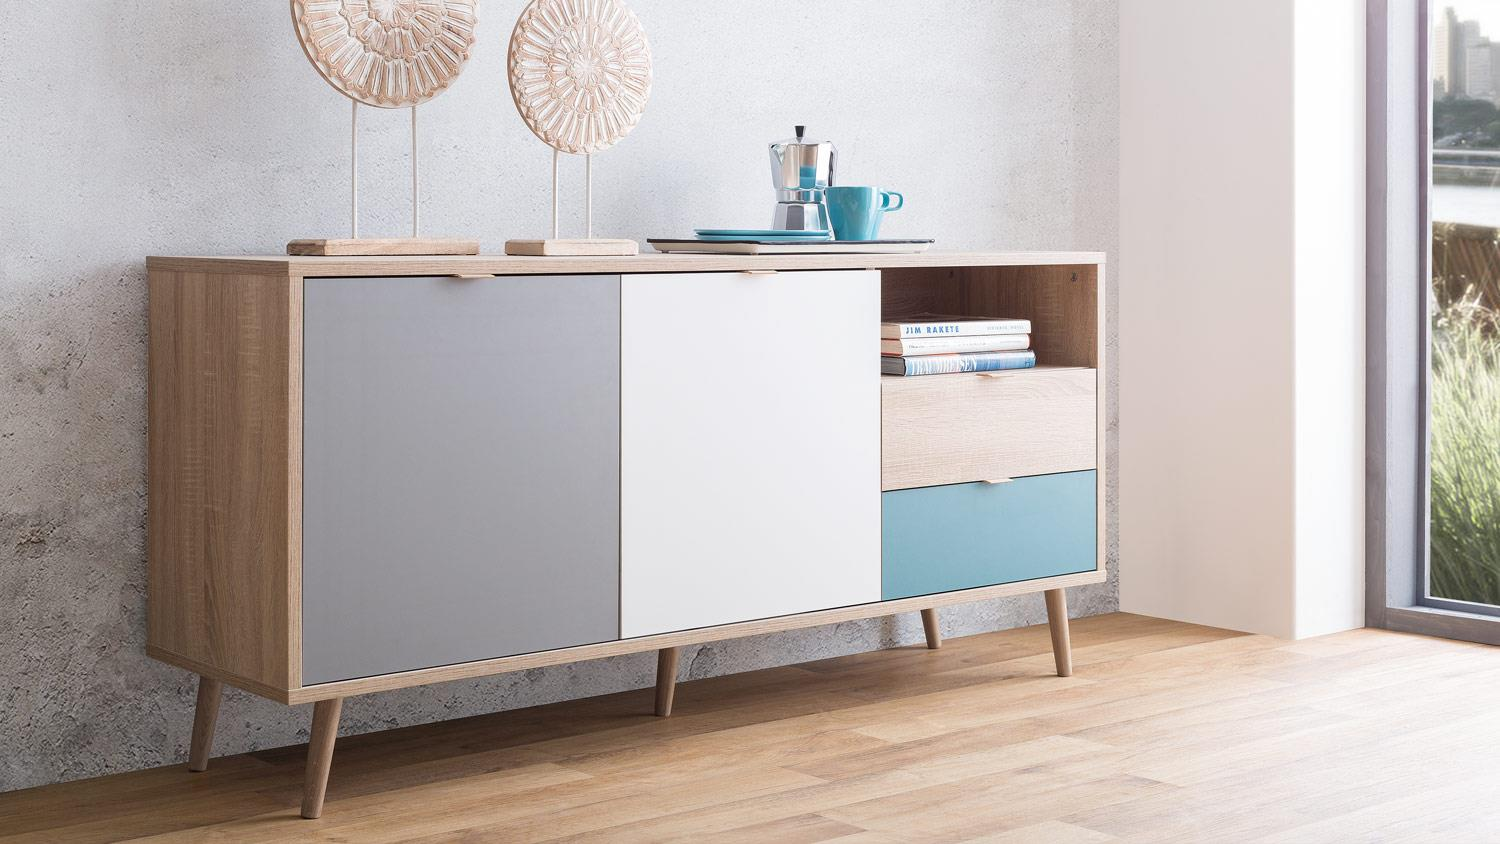 sideboard cuba kommode anrichte sonoma eiche wei grau petrol 150x68. Black Bedroom Furniture Sets. Home Design Ideas